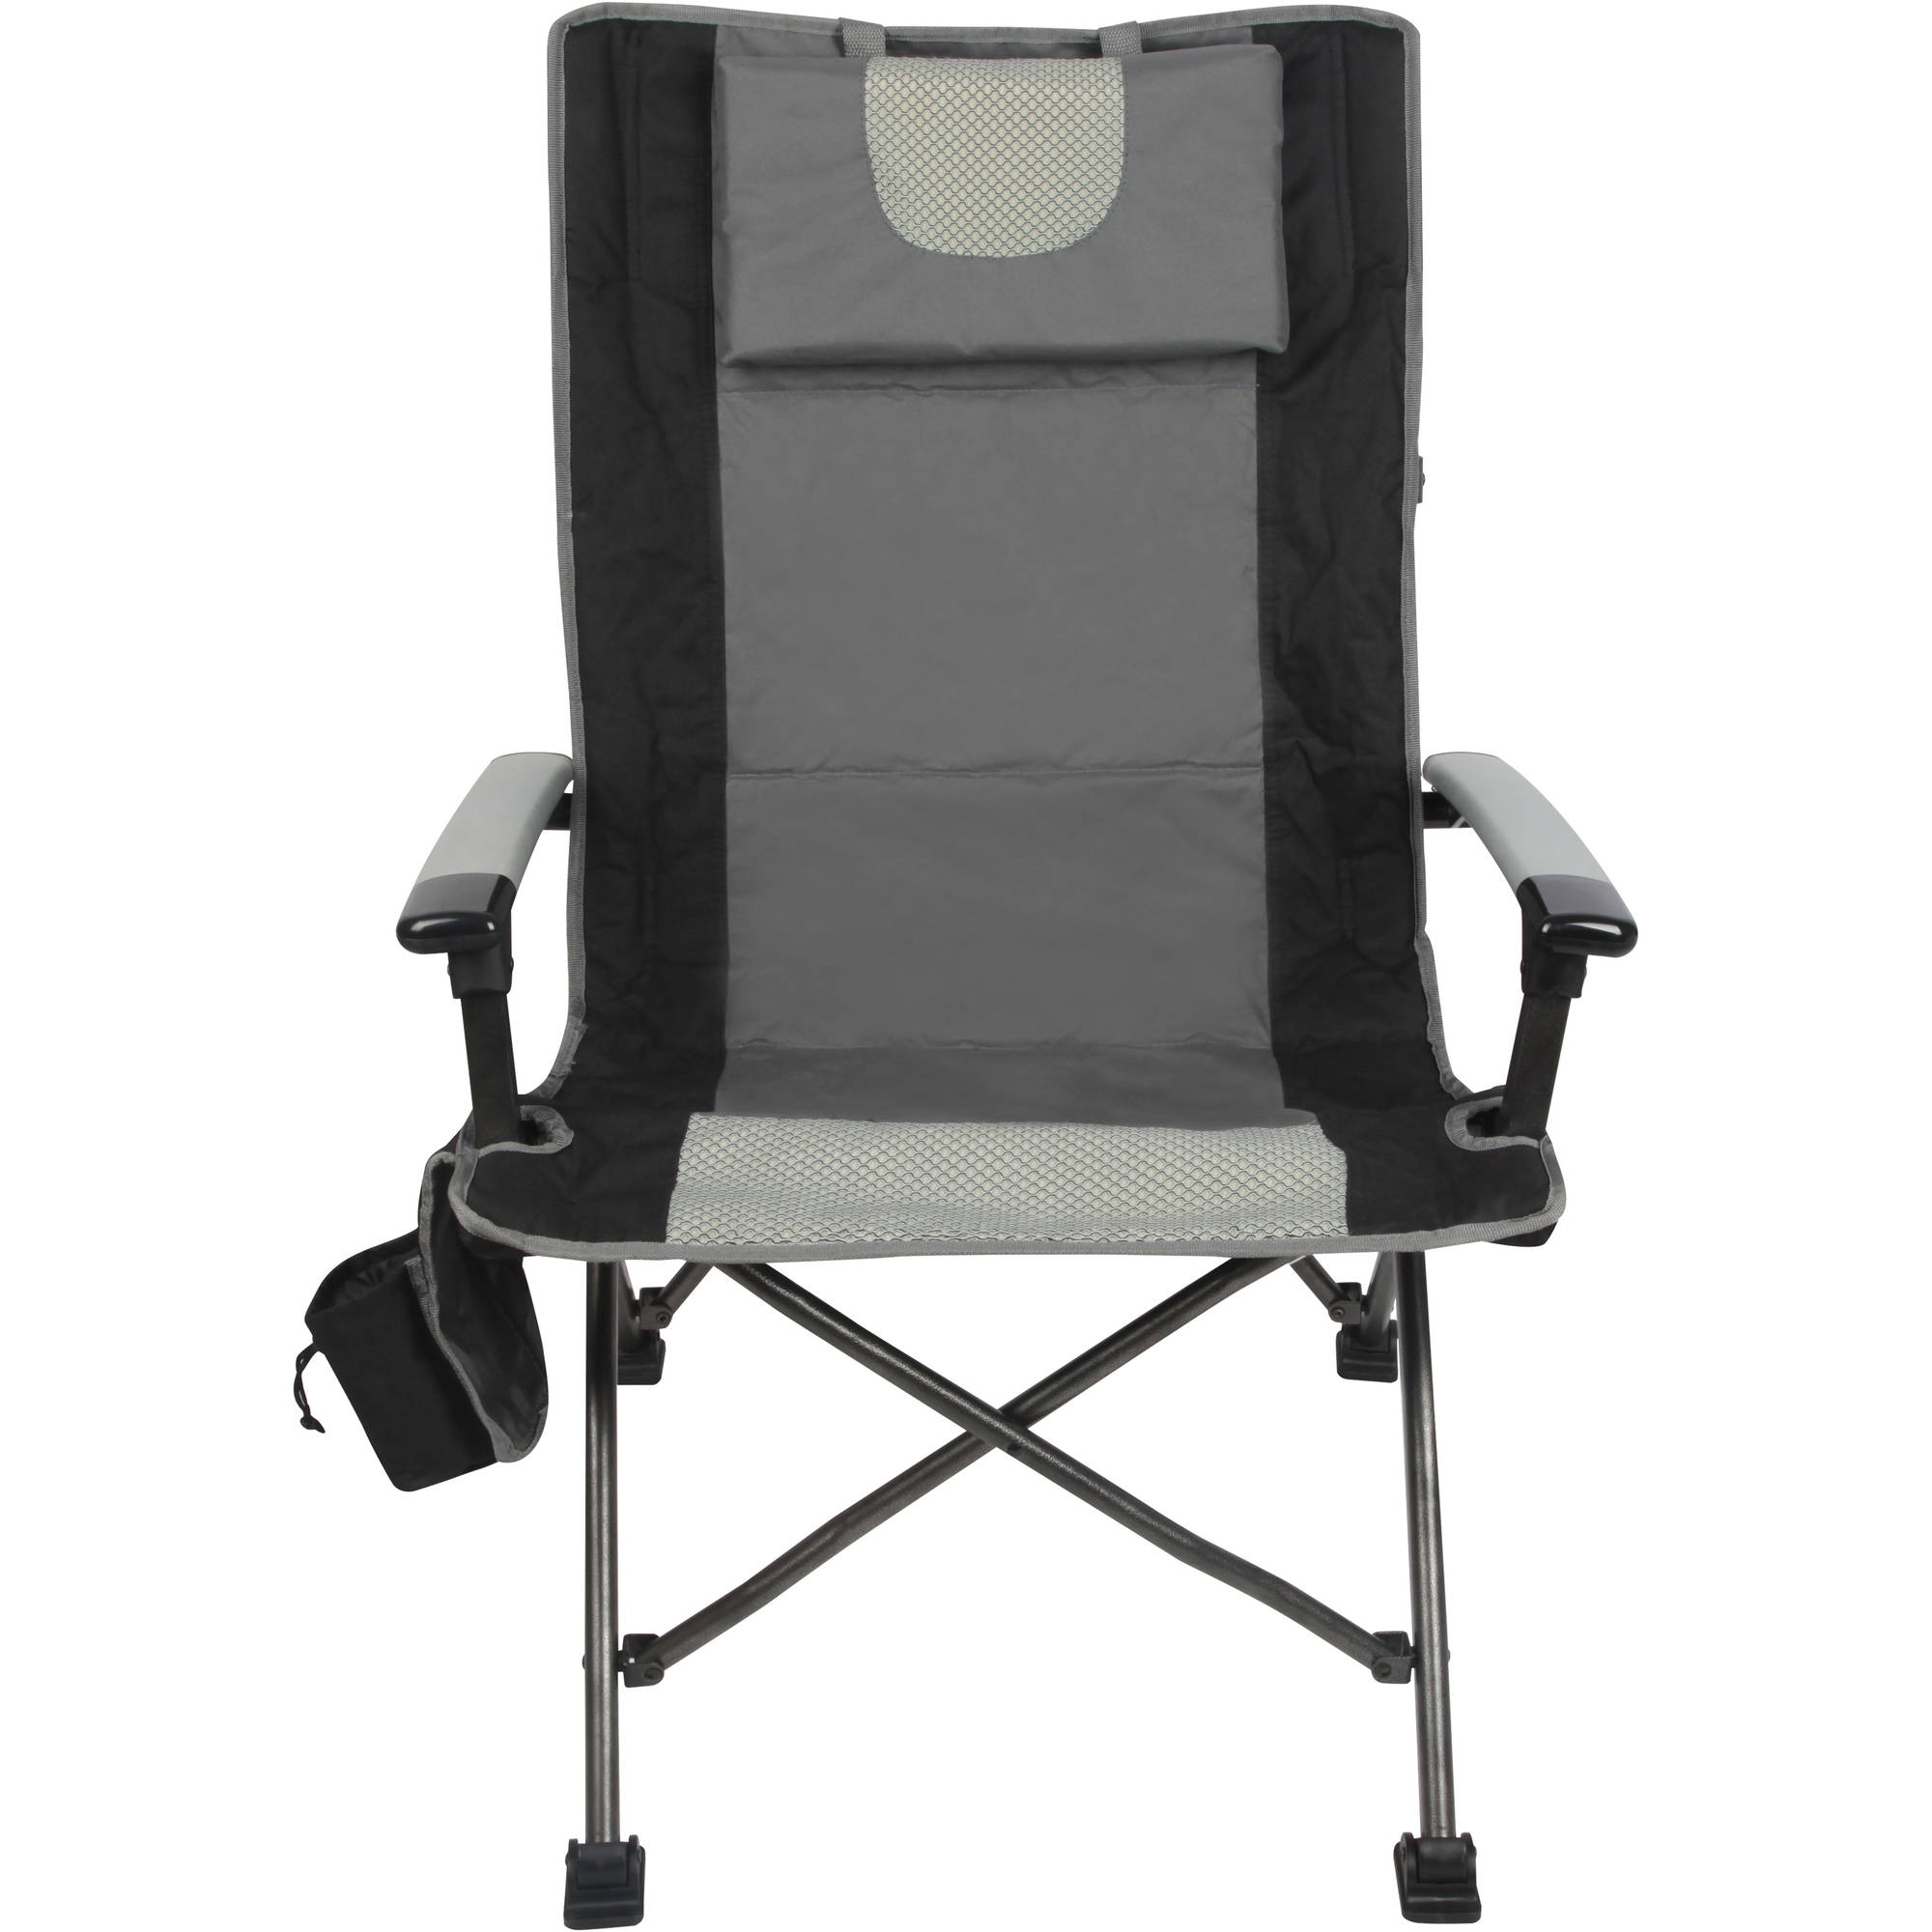 Folding Camping High Chair Outdoor High Back Folding Chair With Headrest Set Of 2